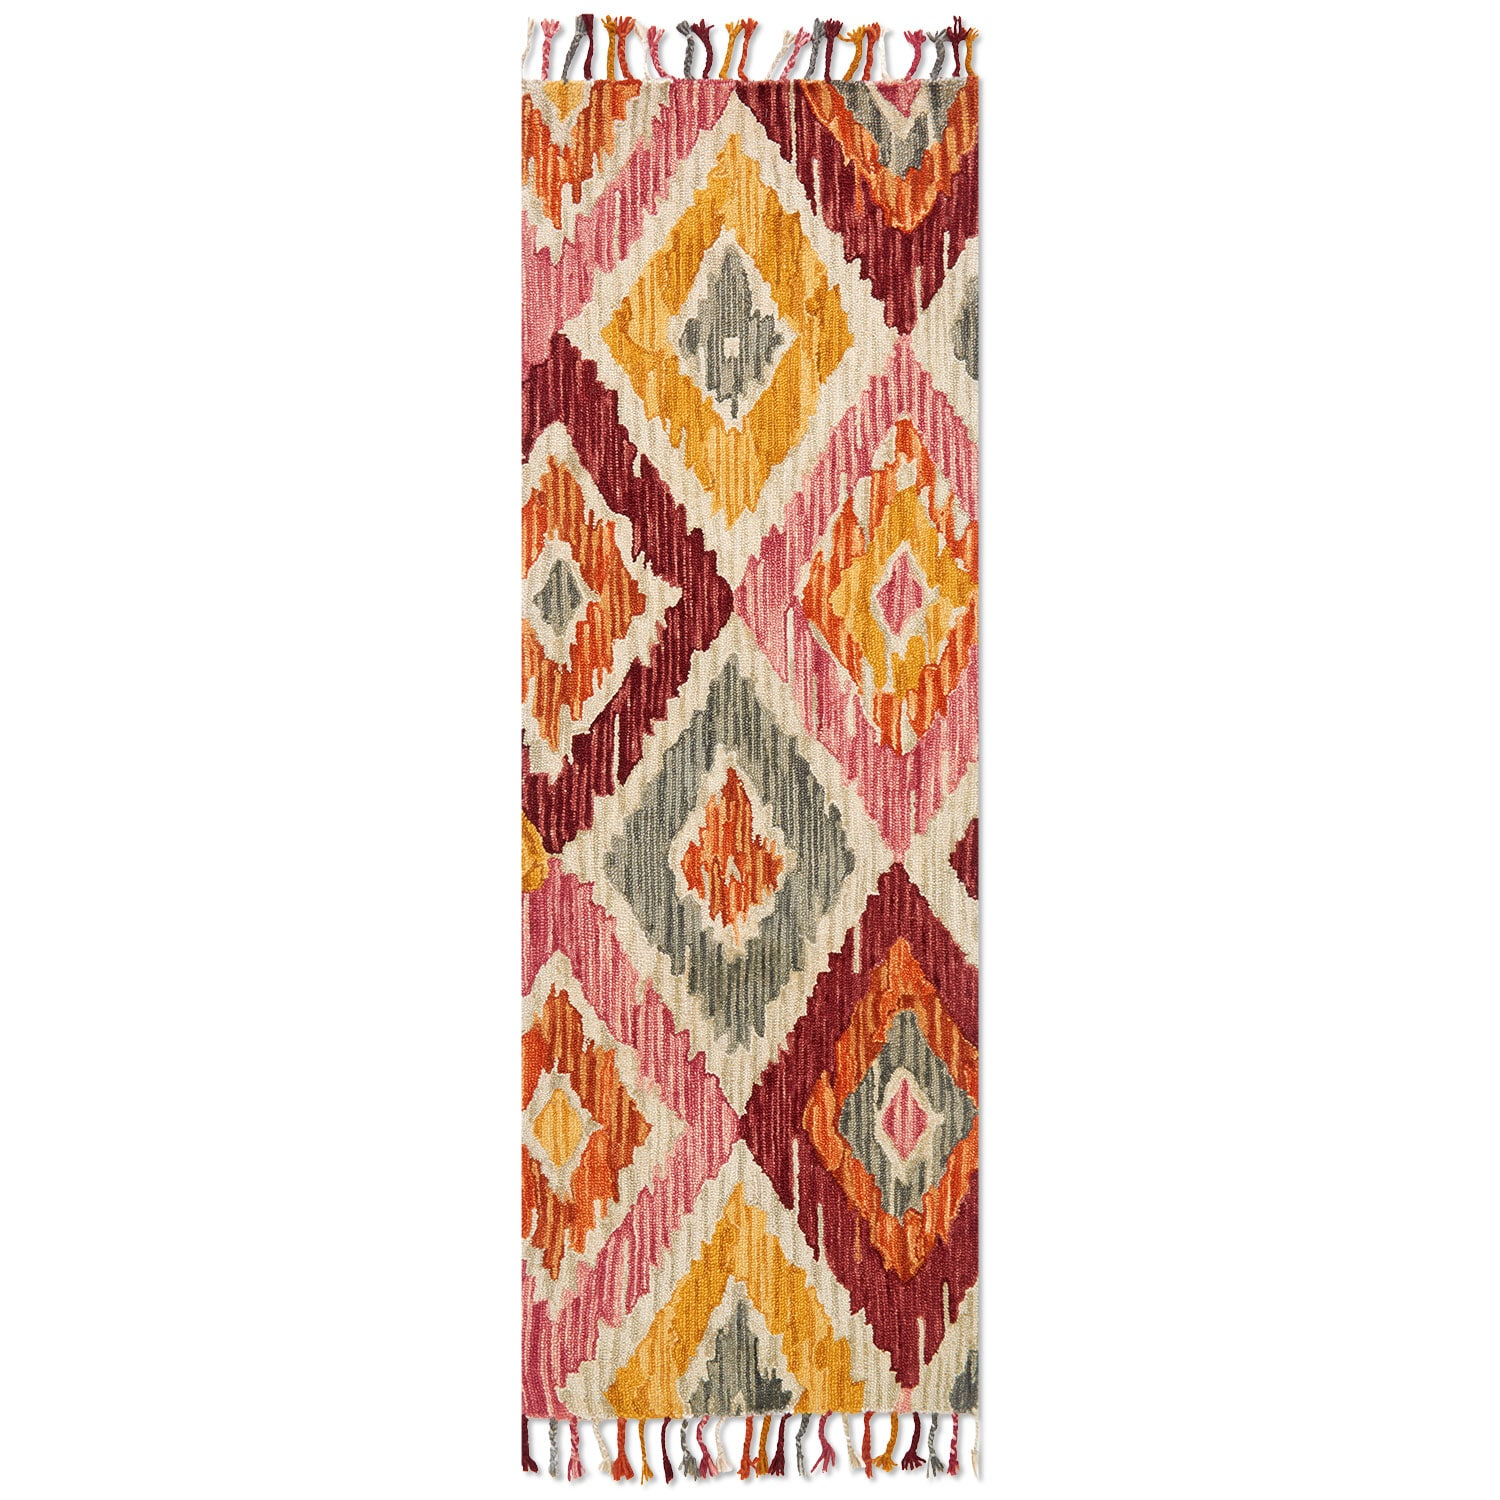 Brushstroke 3' x 8' Rug - Silver Sunset